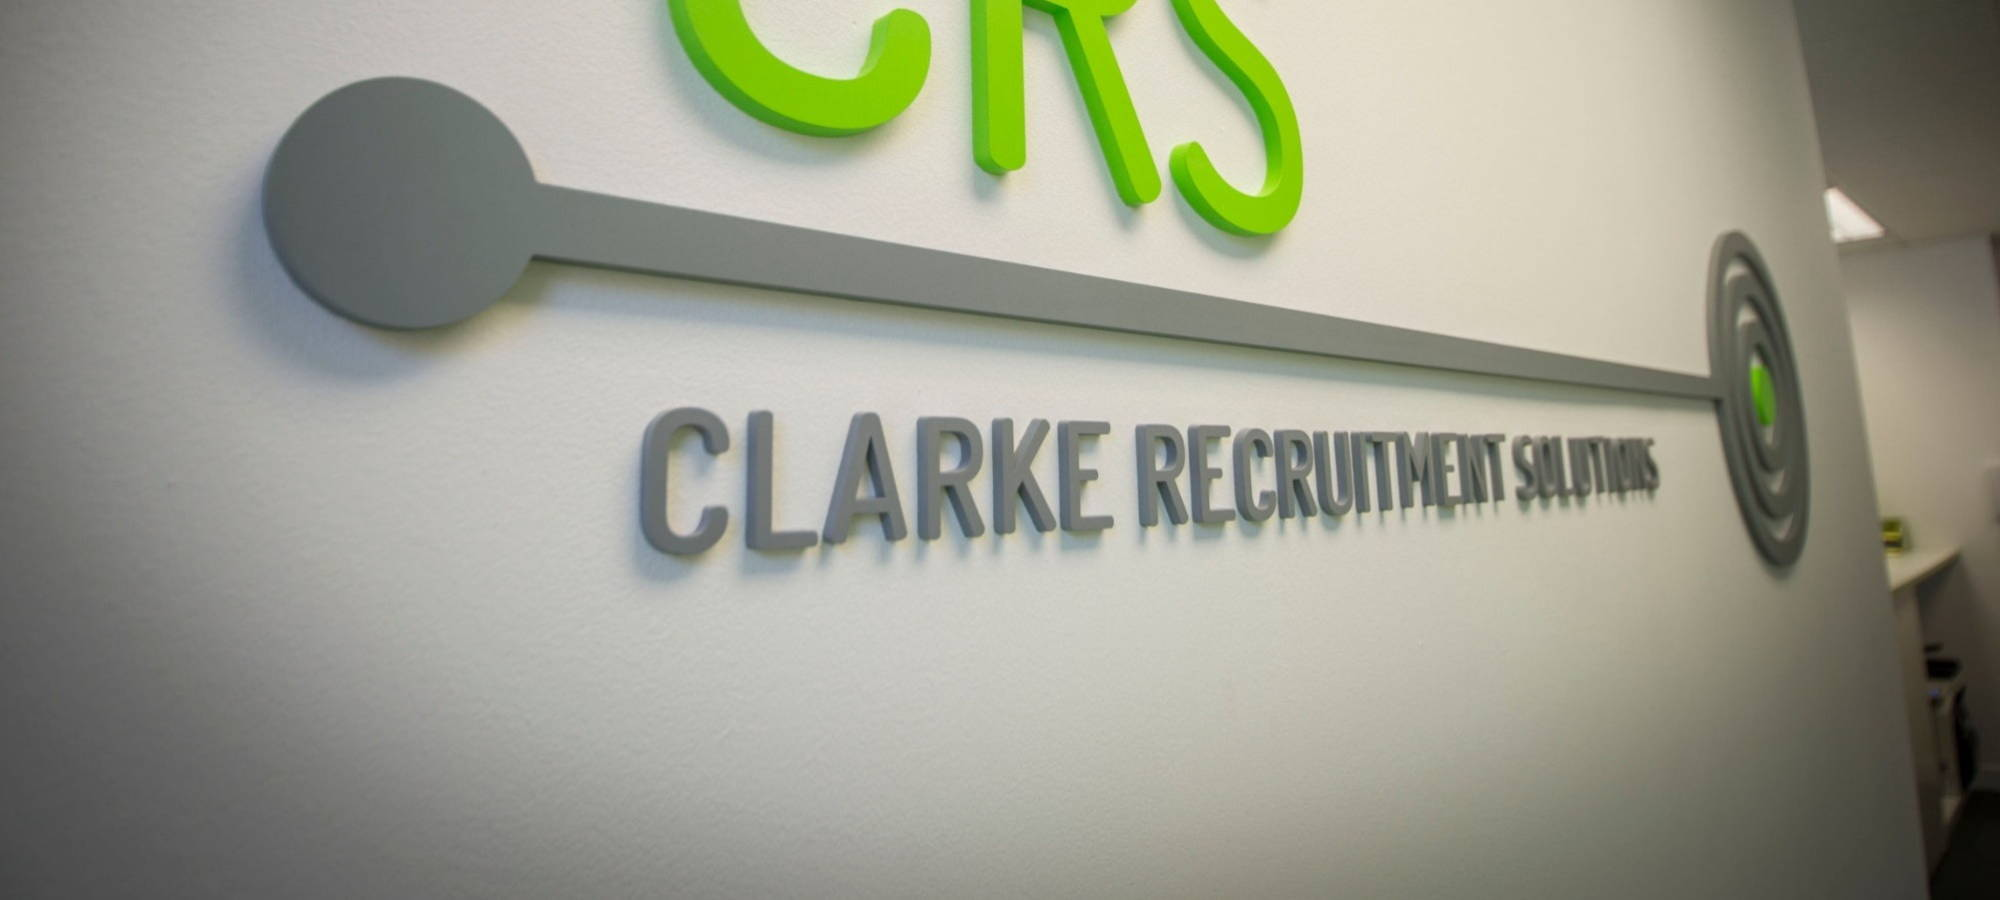 Clarke Recruitment logo placed on our office wall